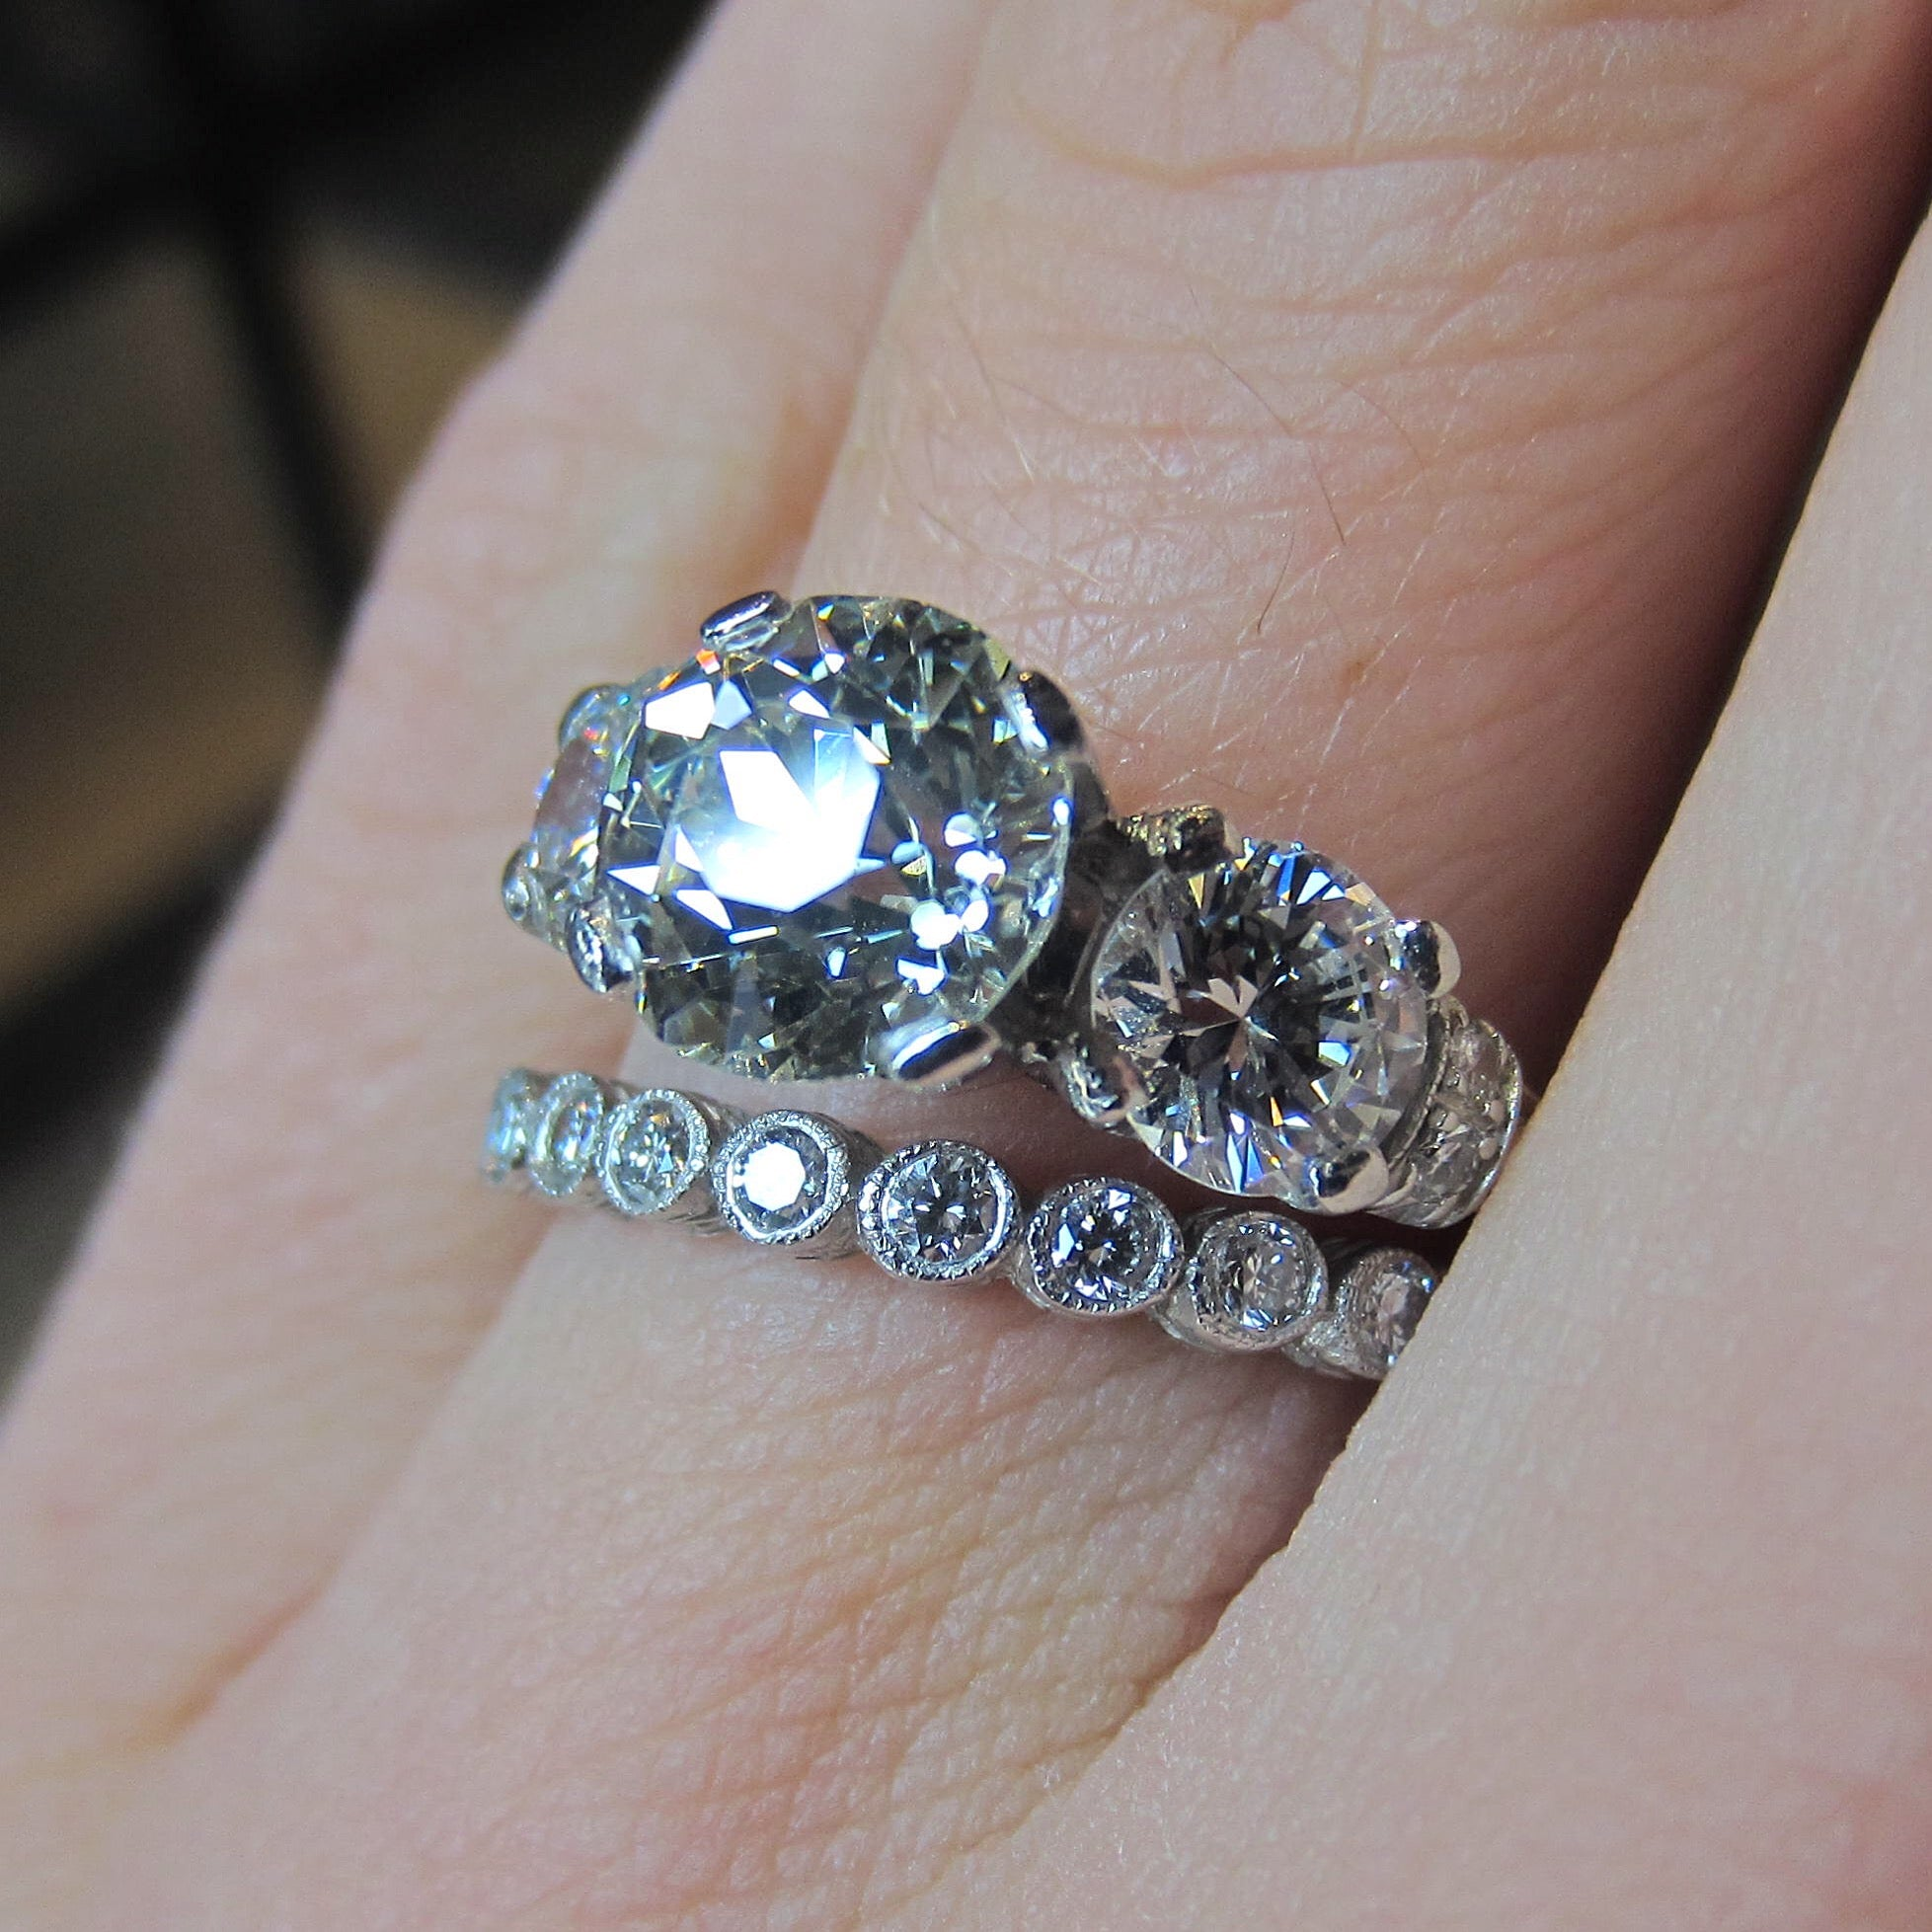 Three stone diamond engagement ring and wedding band from Doyle & Doyle